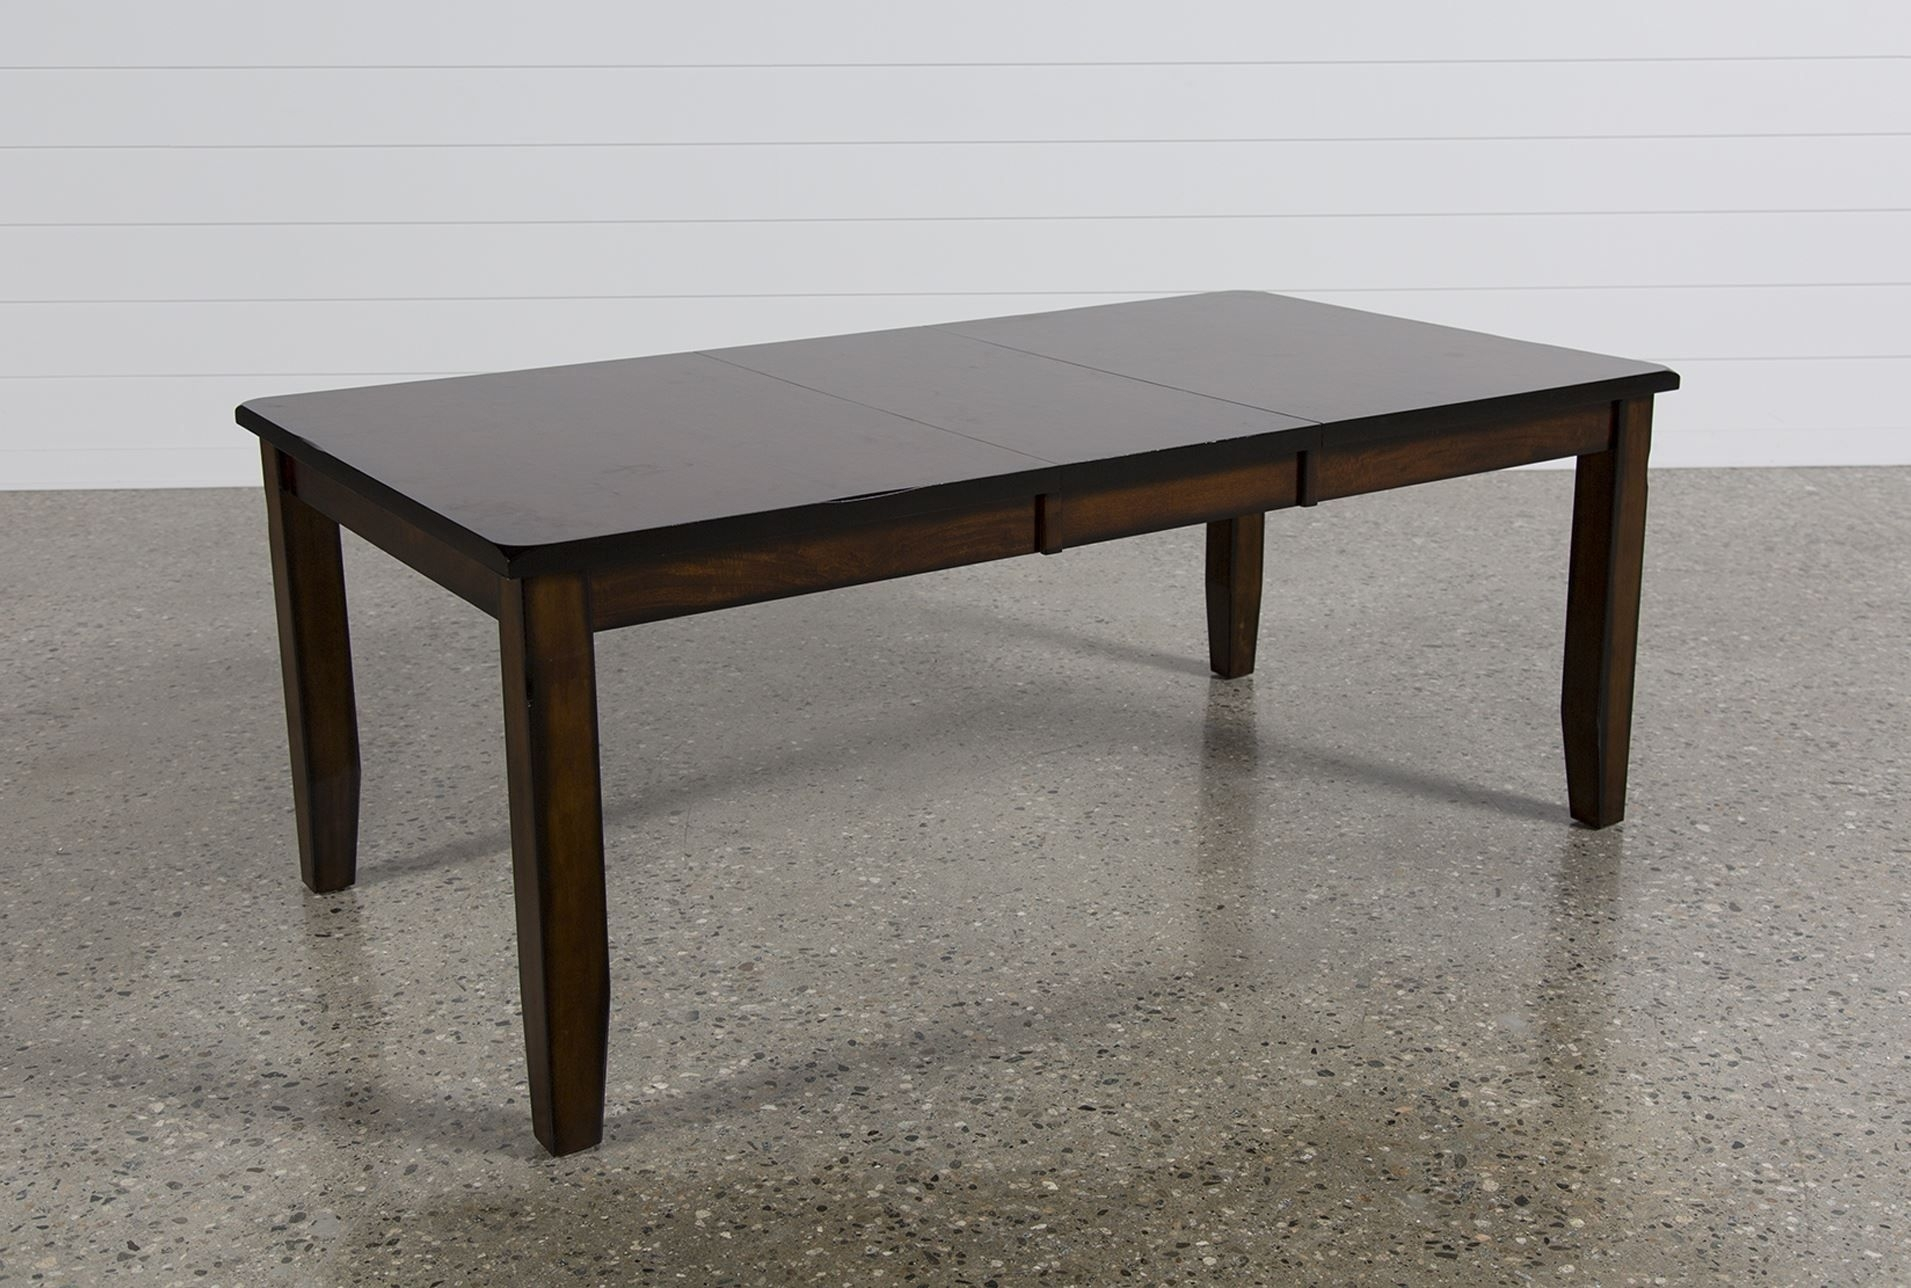 Rocco Extension Dining Table, Dark Espresso | Extensions Regarding Current Rocco Extension Dining Tables (Photo 3 of 20)